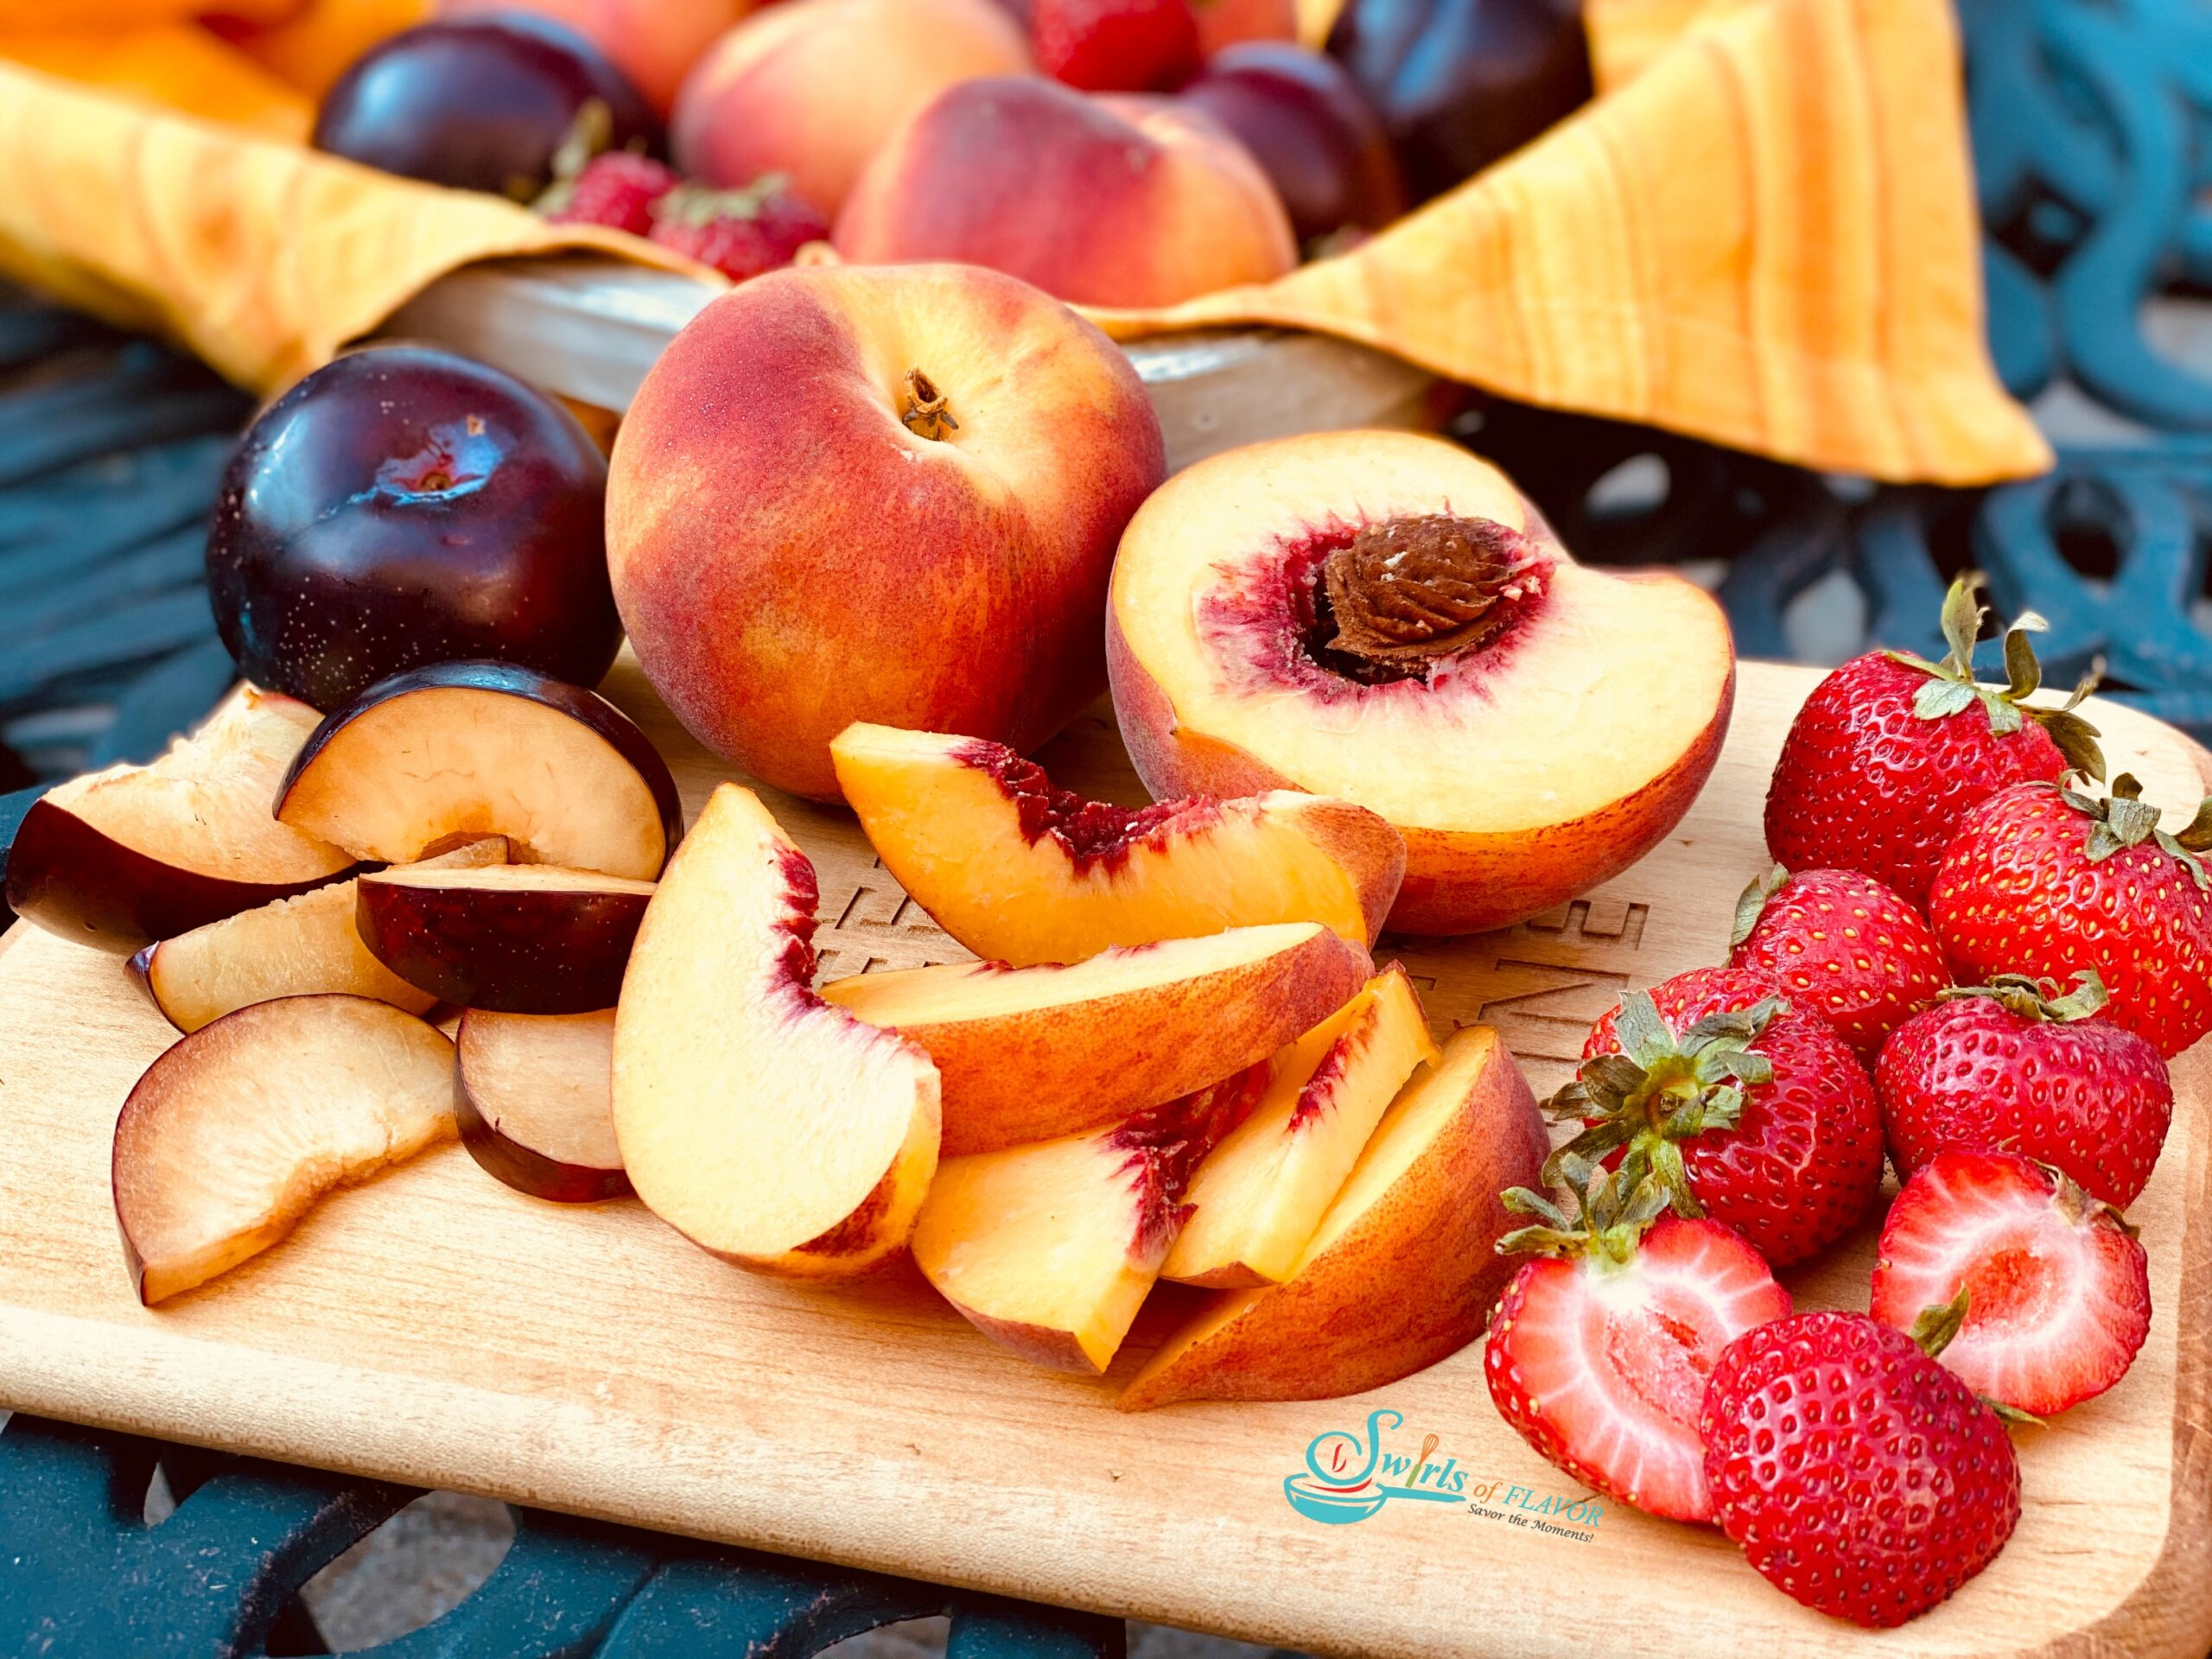 Sliced peaches, plums and strawberries on a wooden board